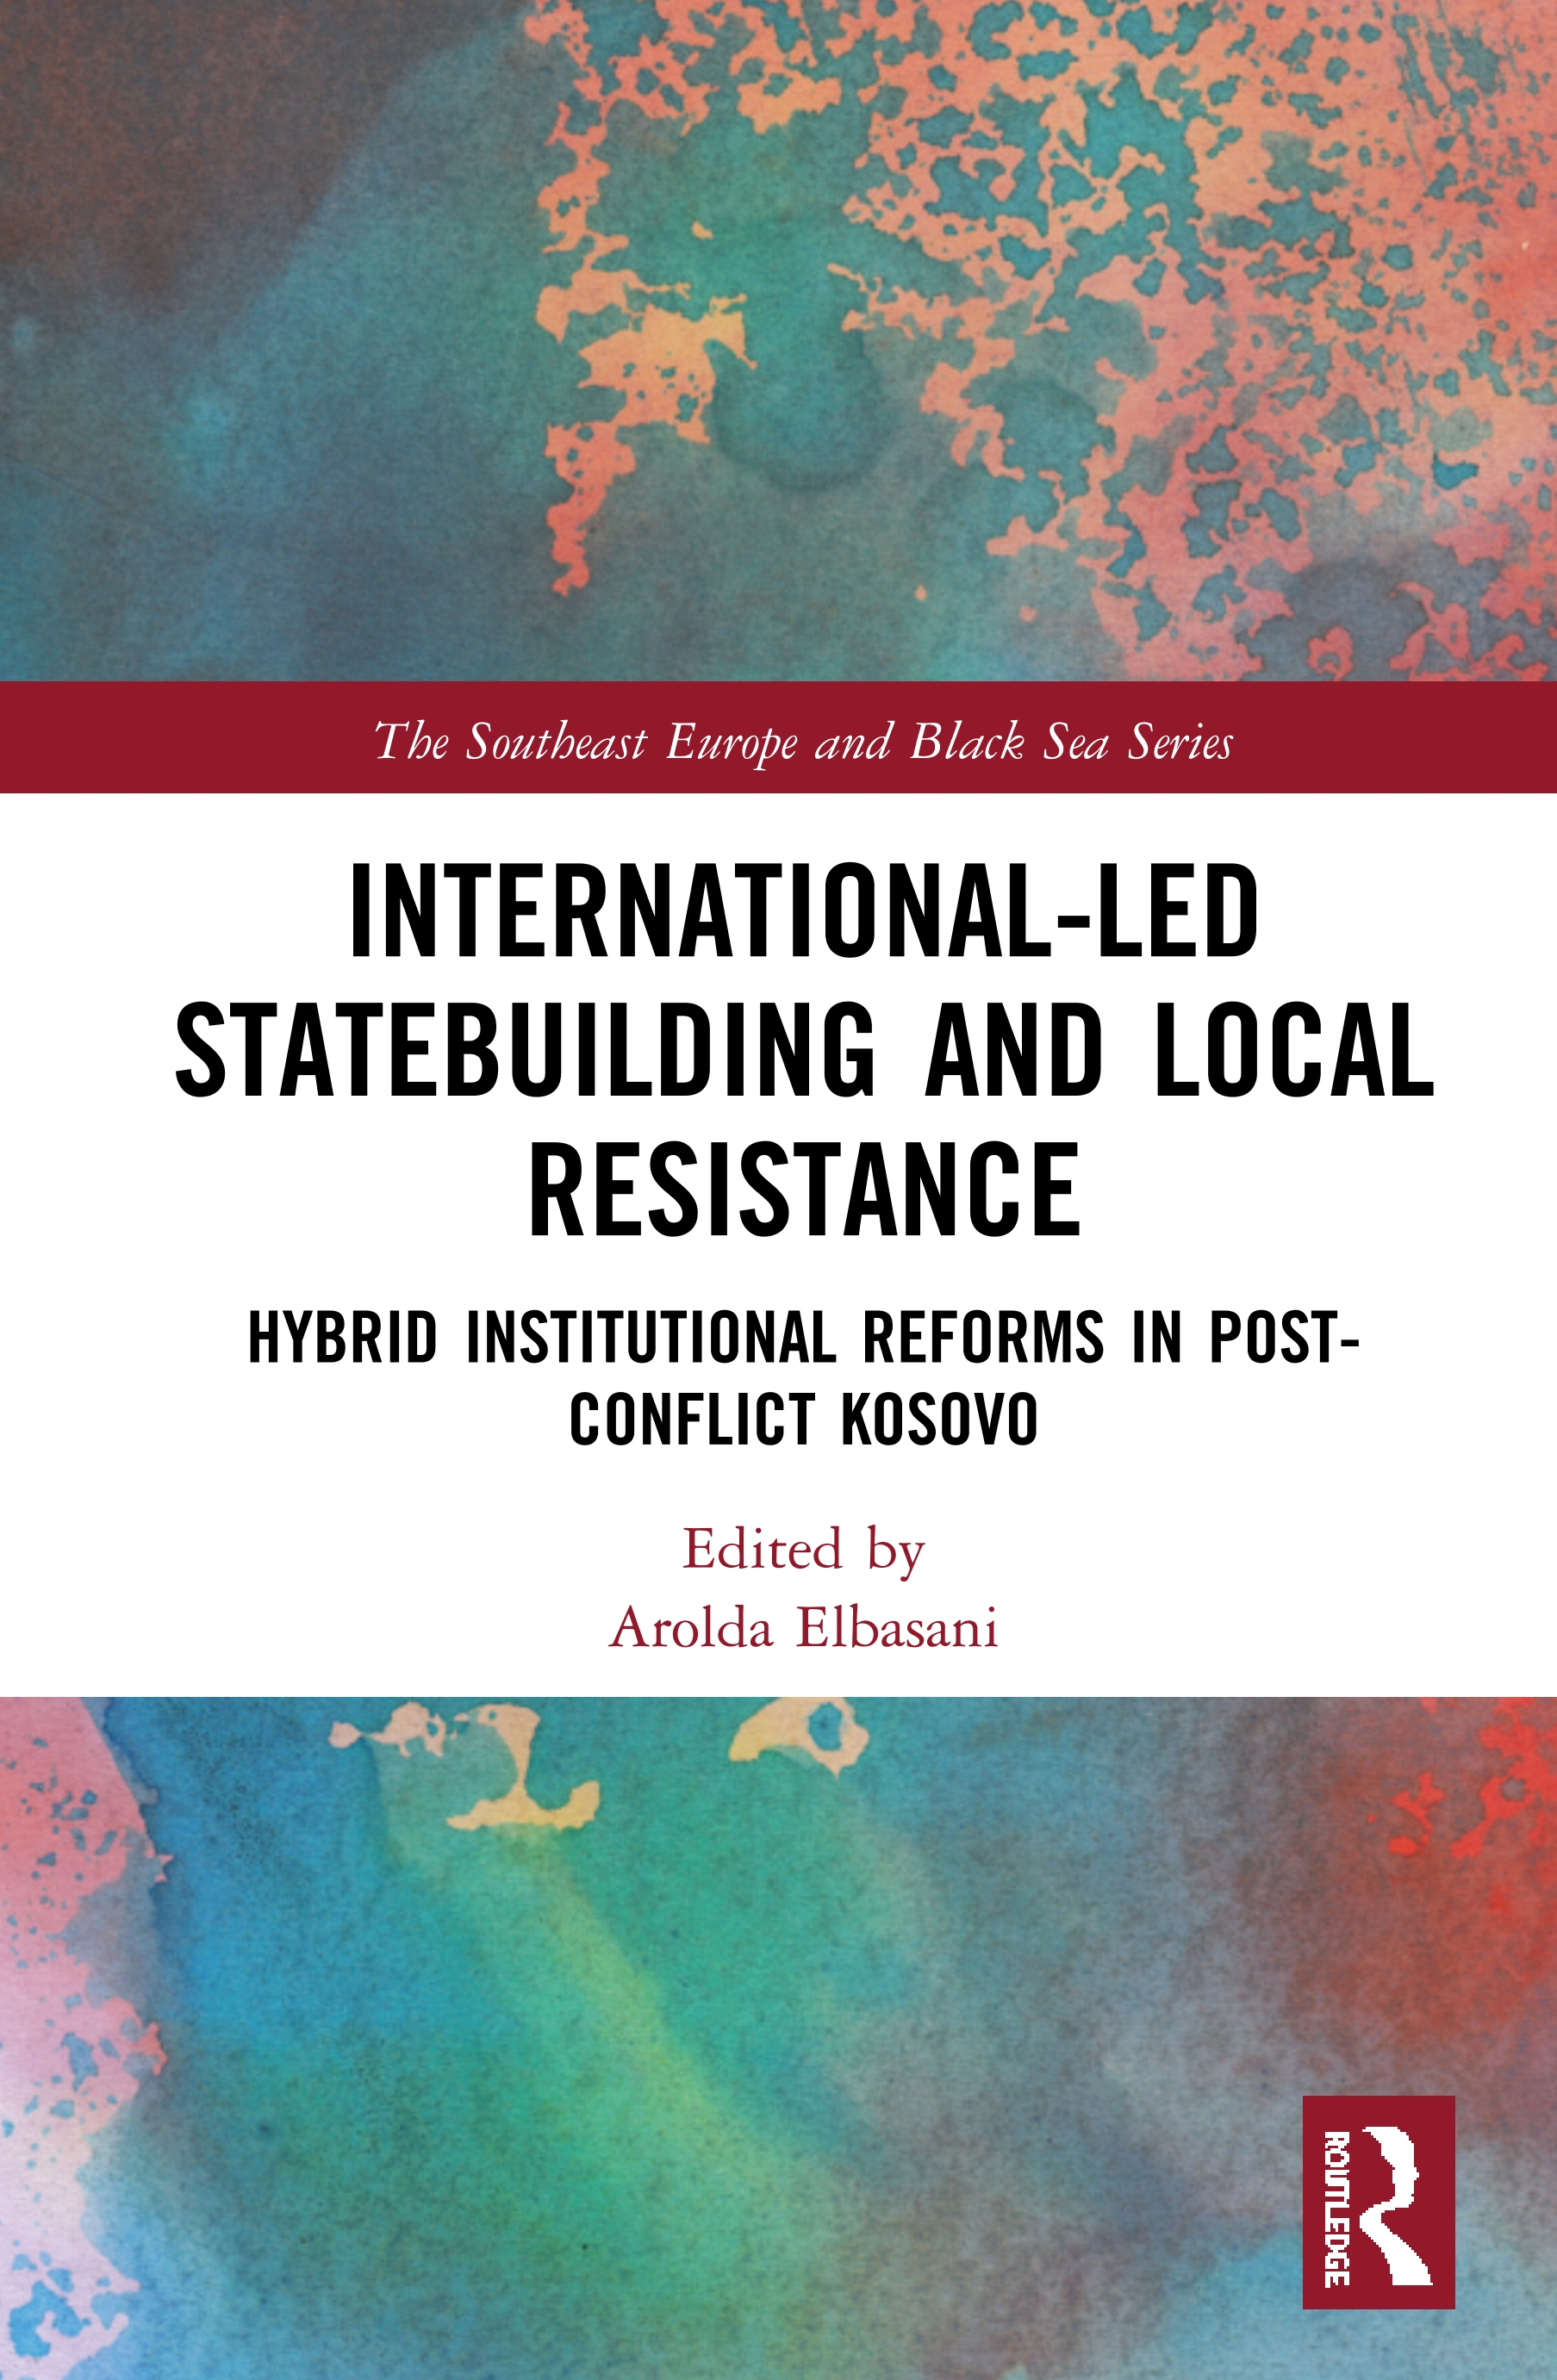 International-Led Statebuilding and Local Resistance: Hybrid Institutional Reforms in Post-Conflict Kosovo book cover